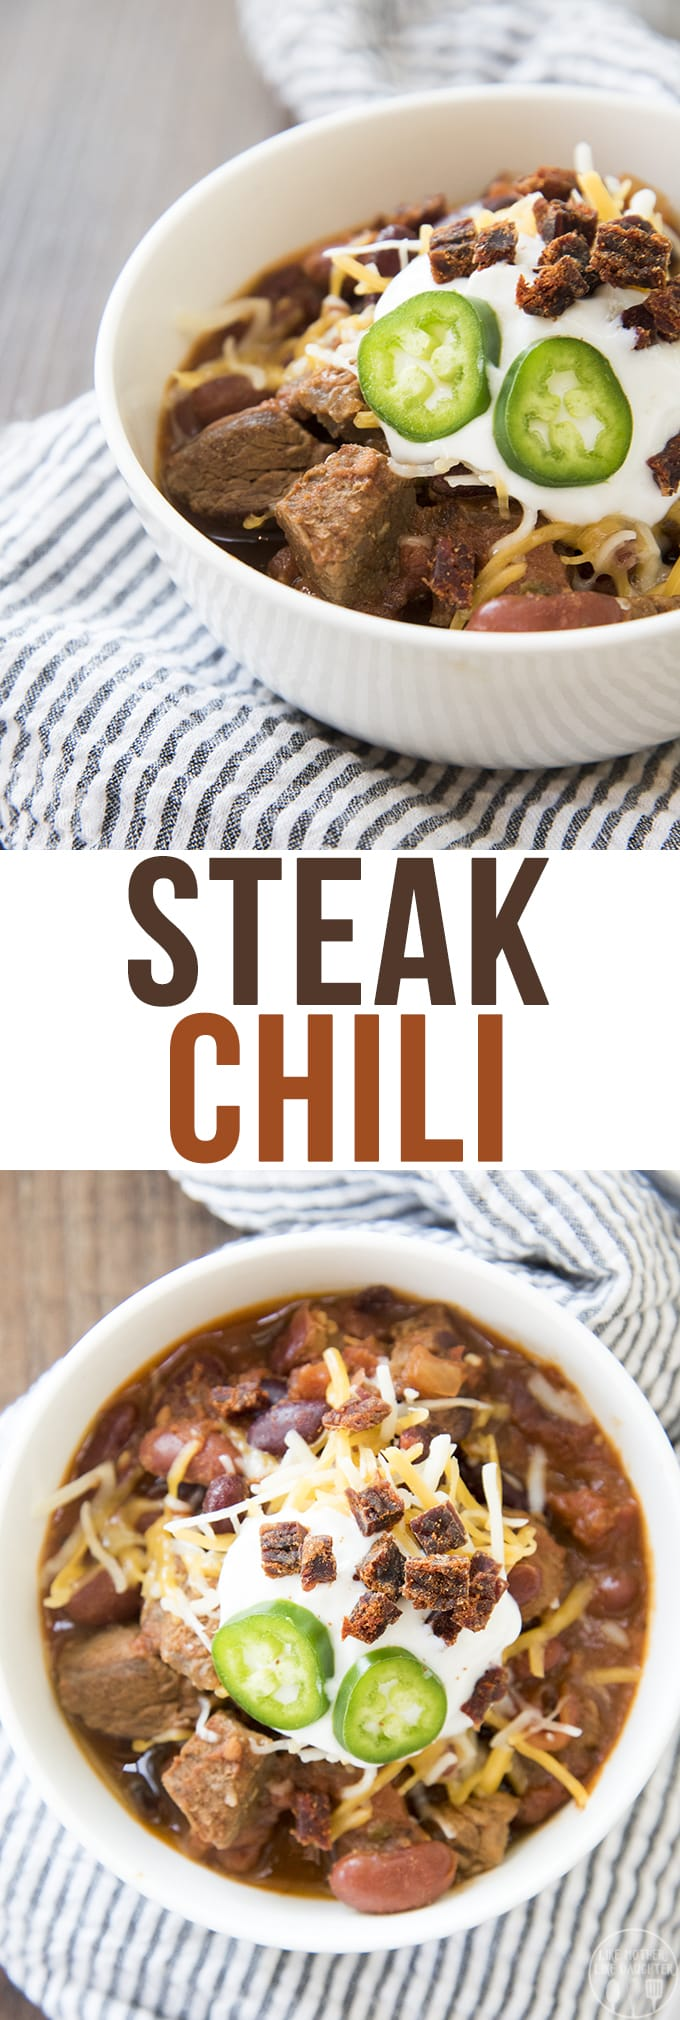 Steak Chili is a delicious and hearty chili packed full of big pieces of steak instead of ground beef. Its perfect with your favorite toppings and great paired with cornbread.